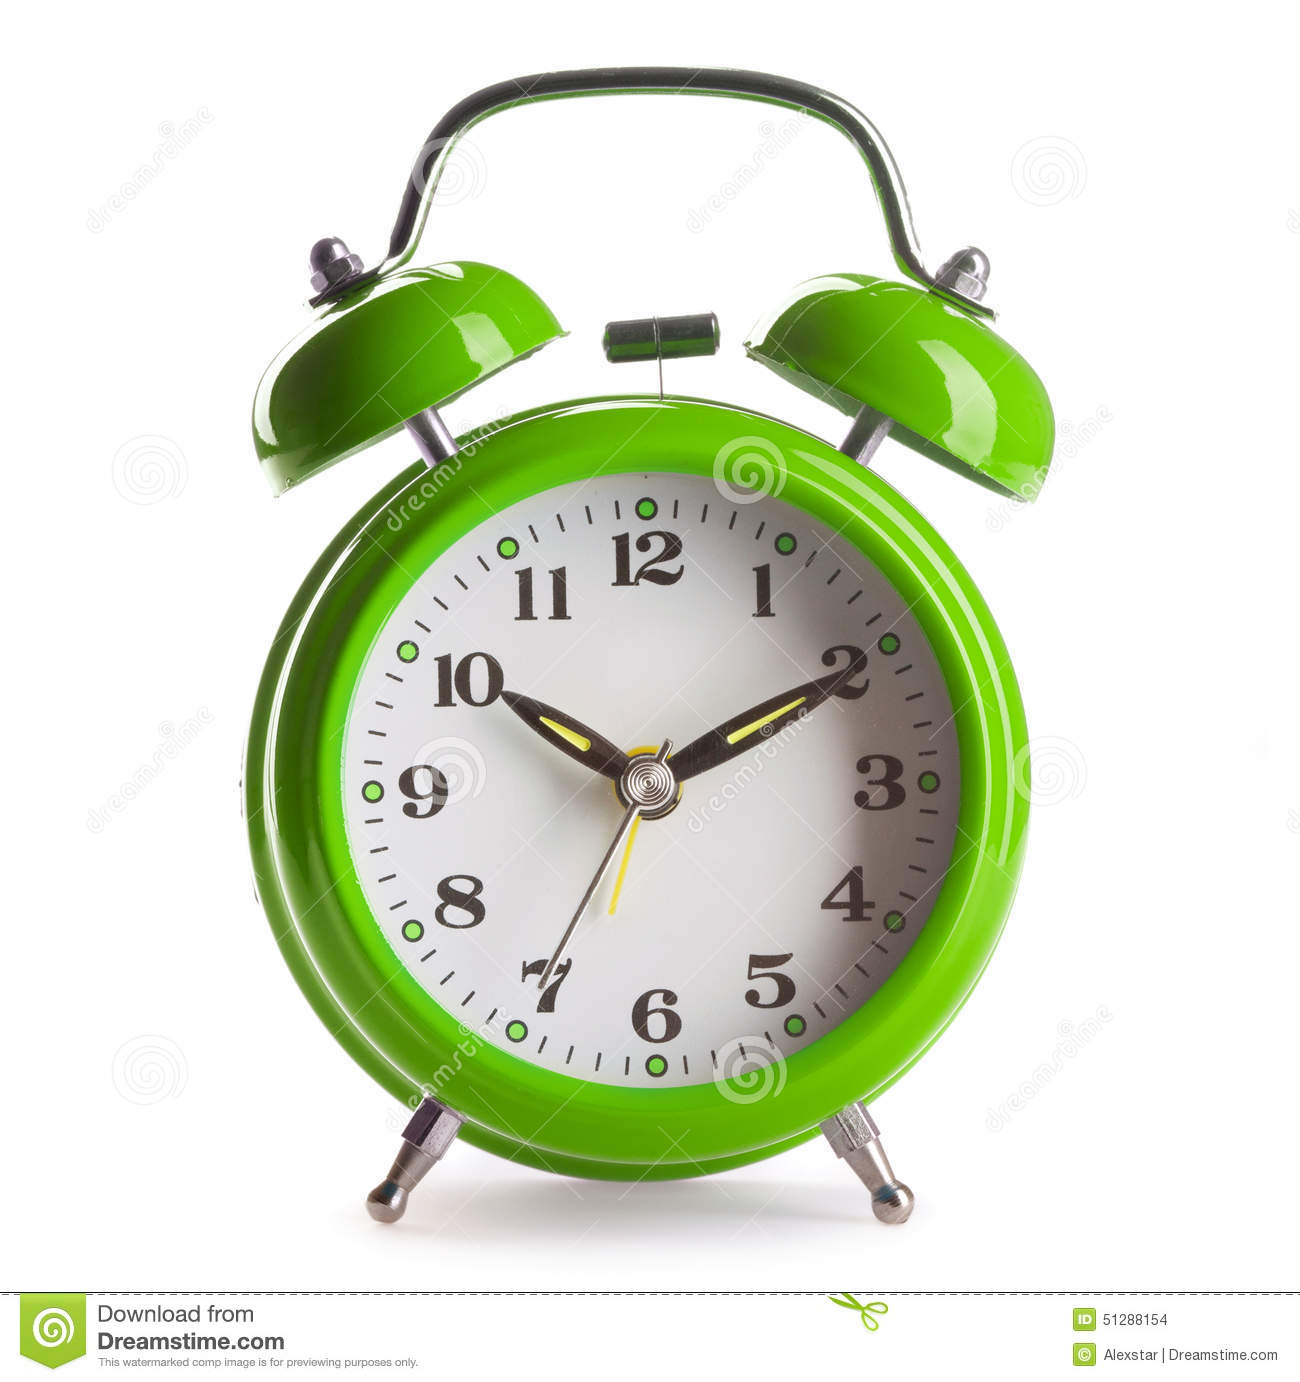 Download Alarm clock stock photo. Image of front, watch, retro - 51288154